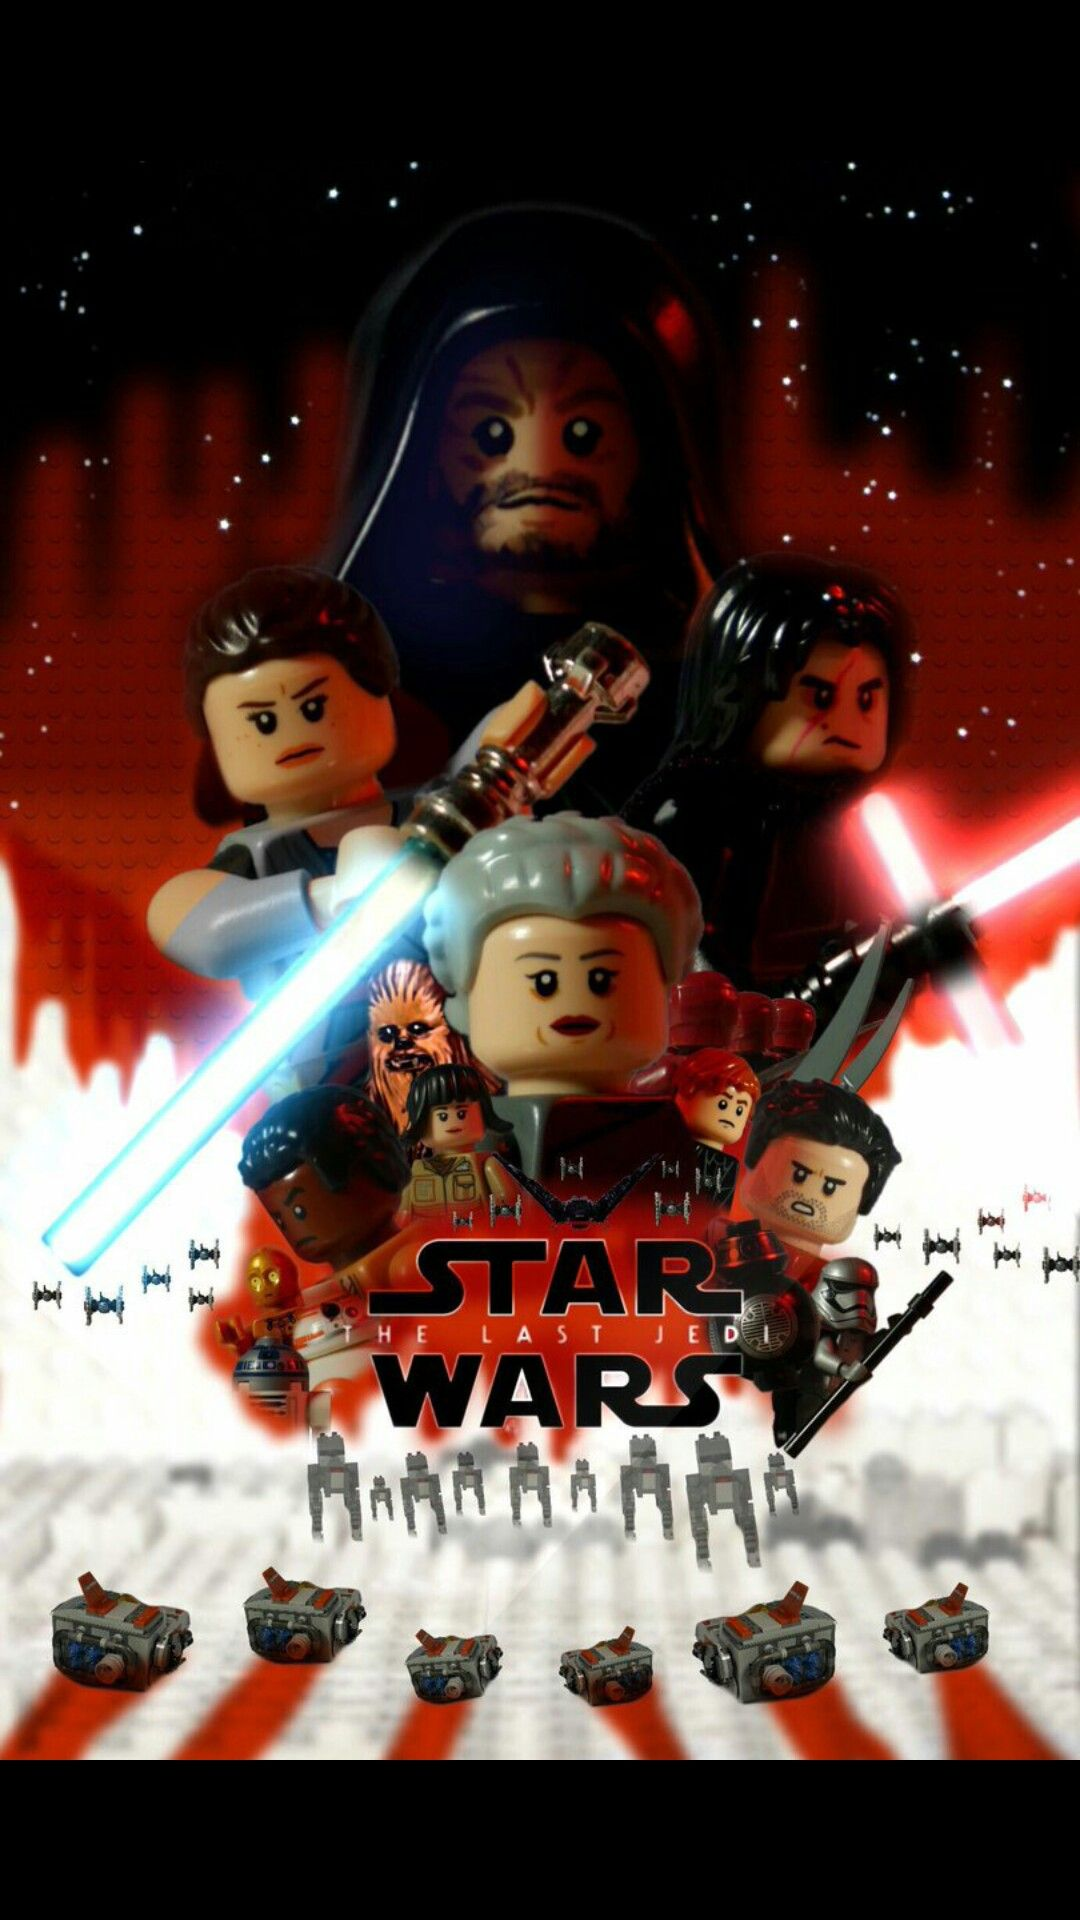 Lego star wars the last jedi fanmade poster the last